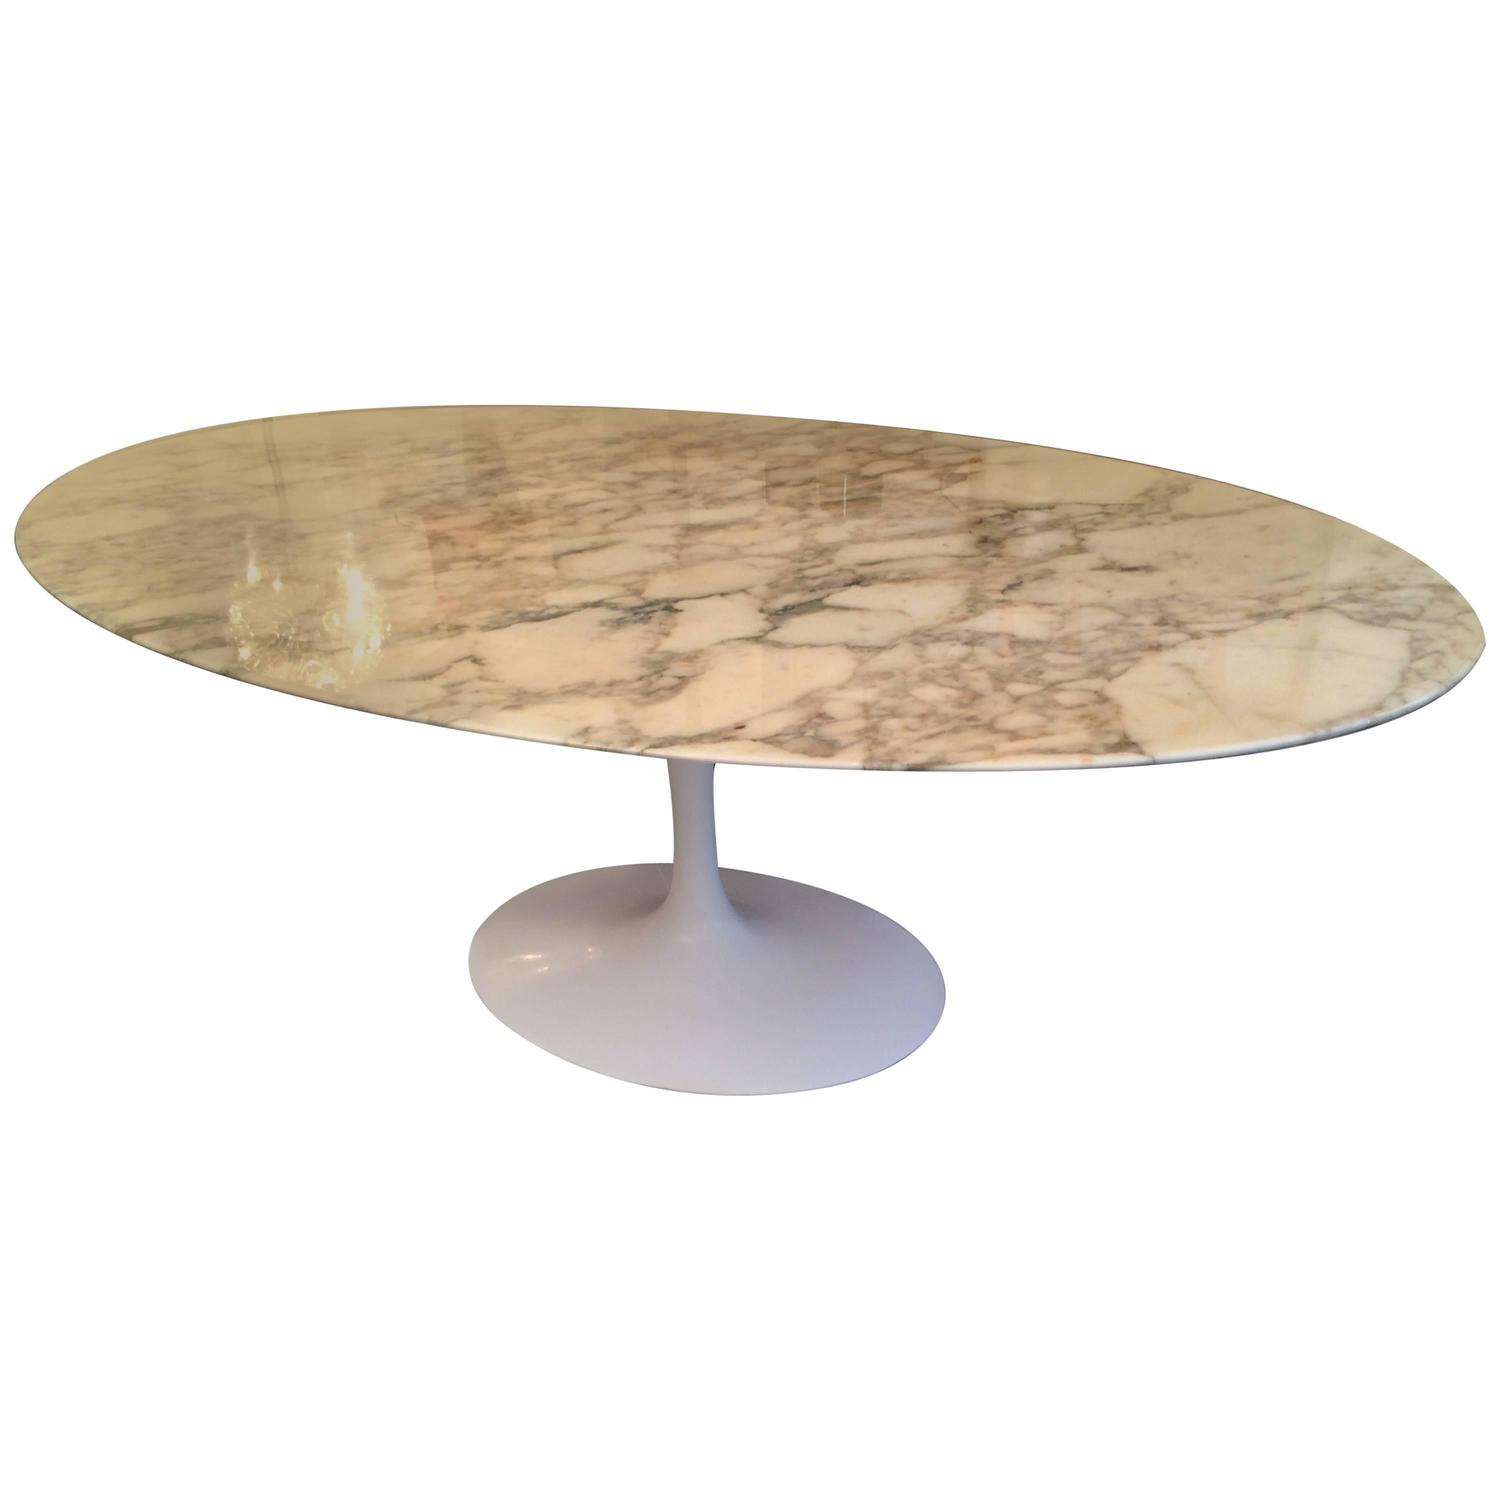 Eero saarinen marble oval dining table 198cm at 1stdibs for Oval dining table